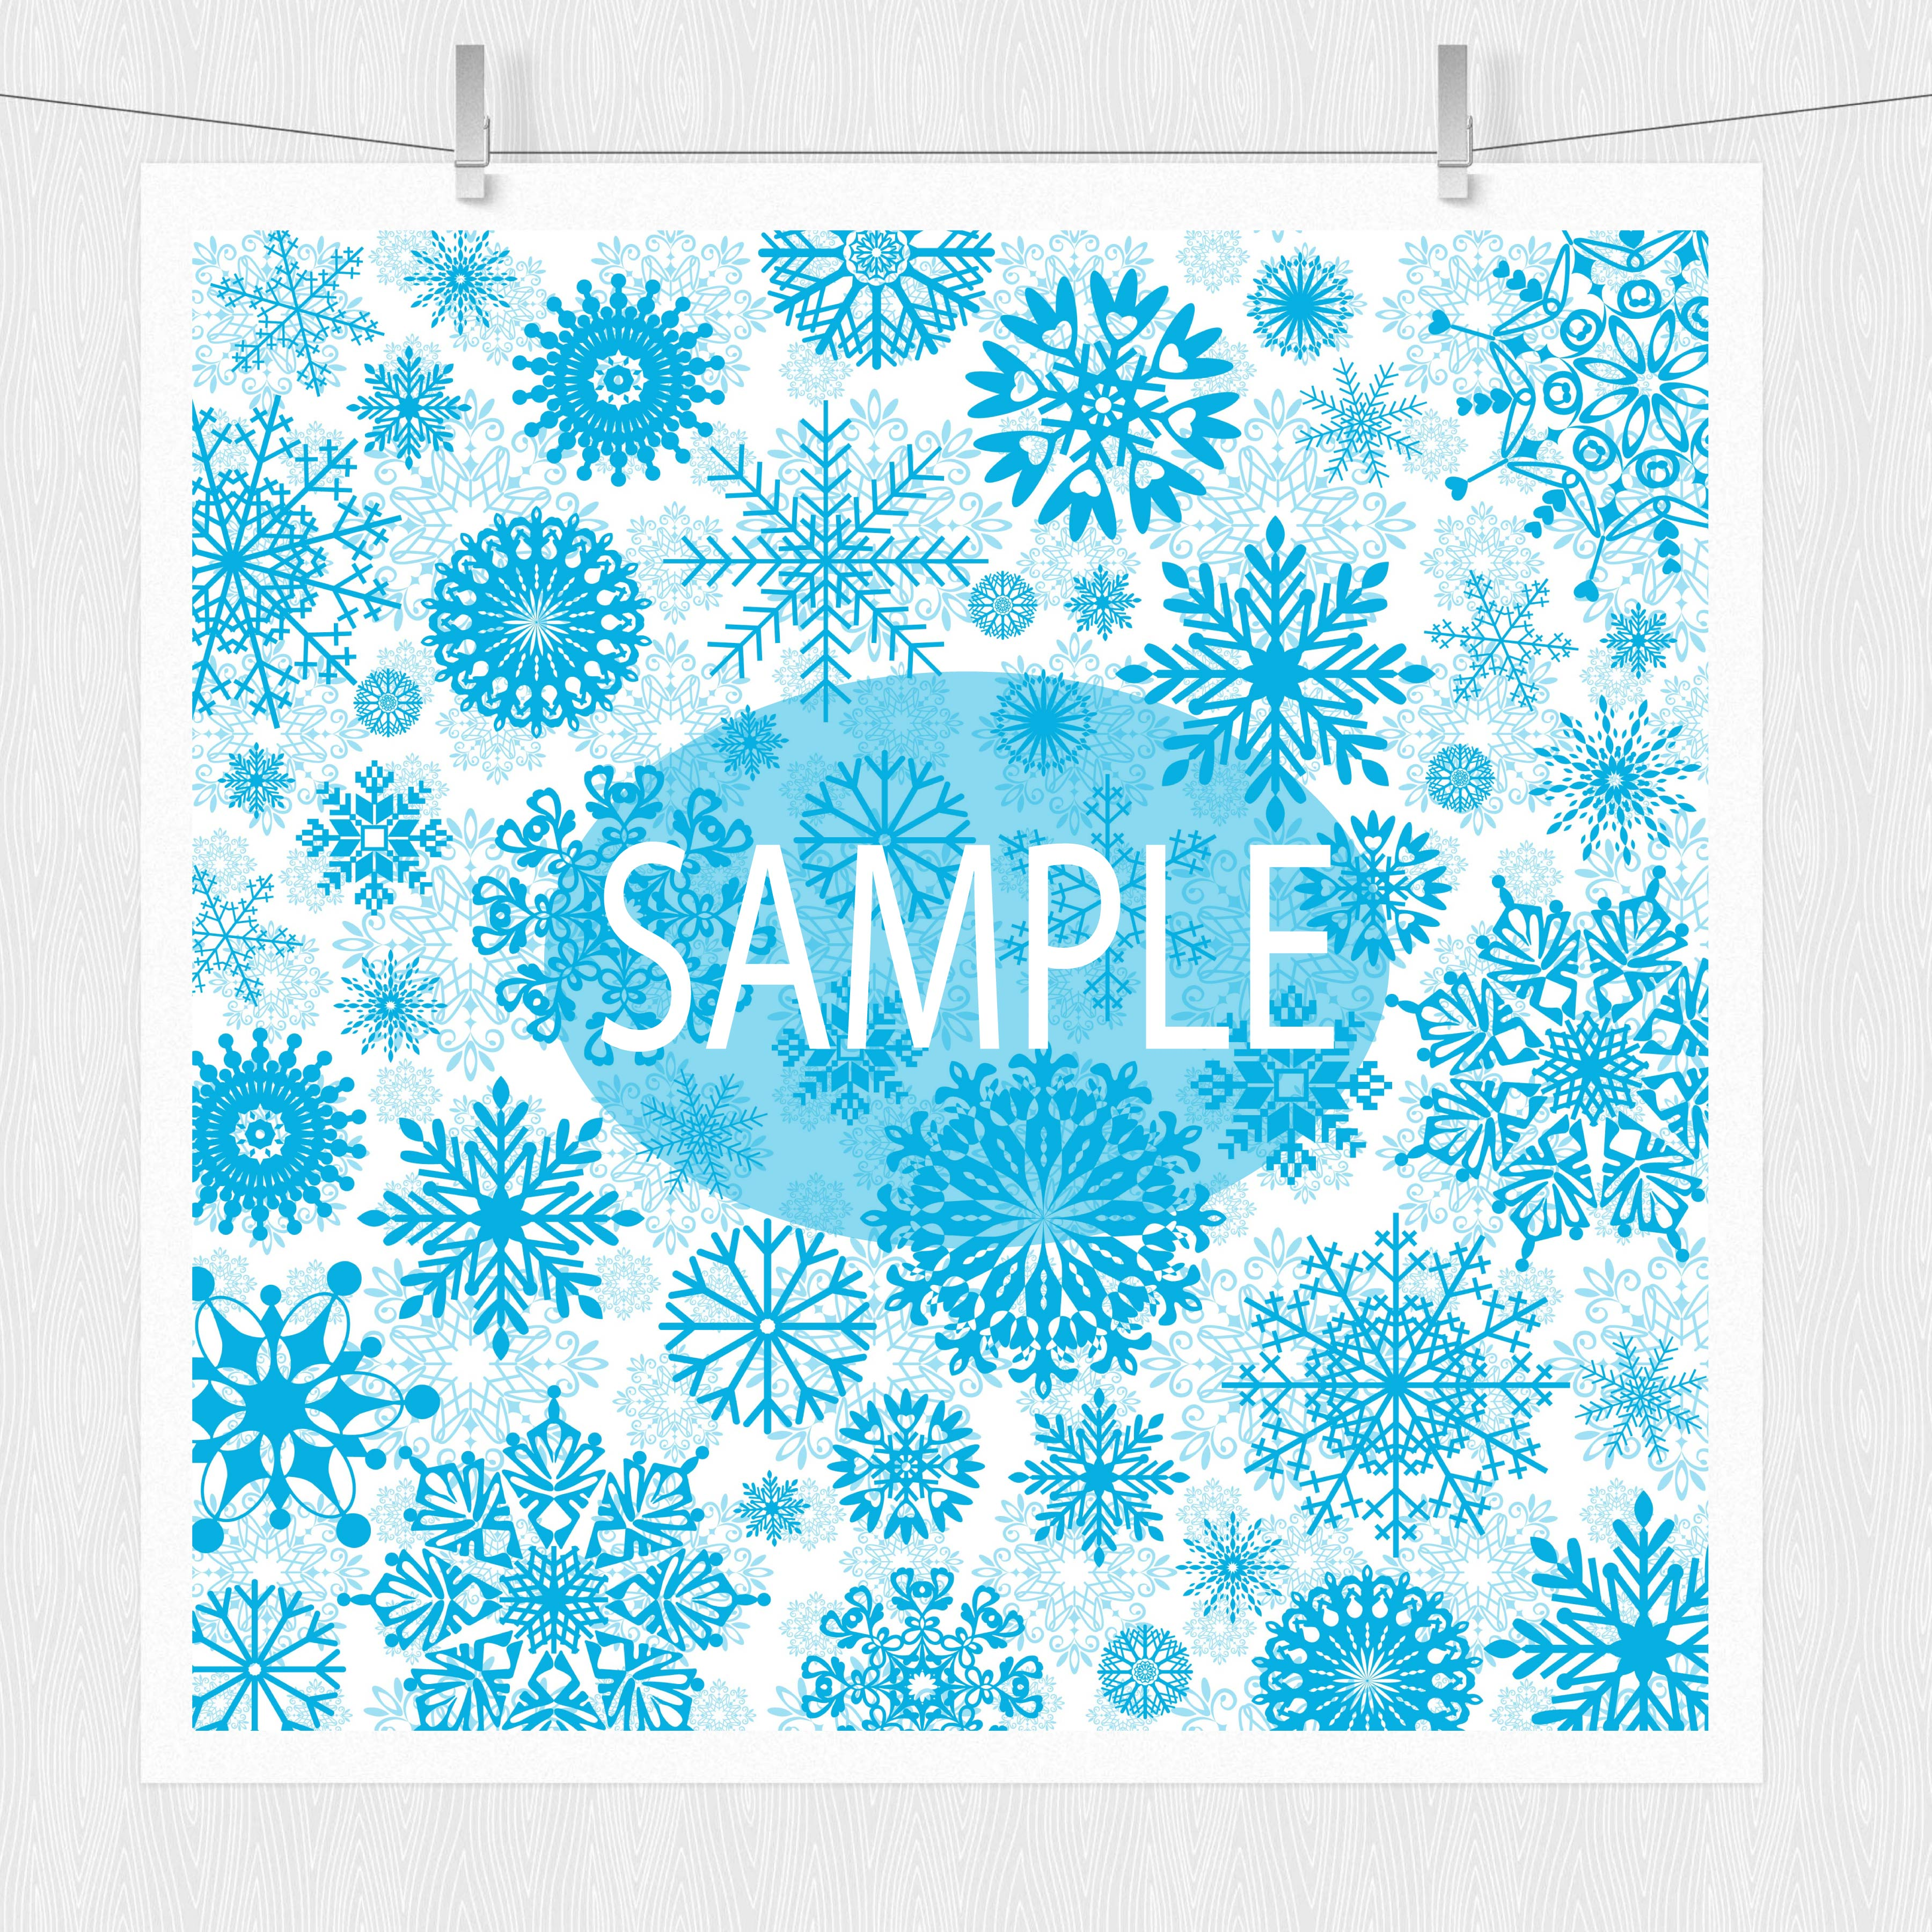 Winter Digital Paper Pack - Snowflake Patterns example image 2